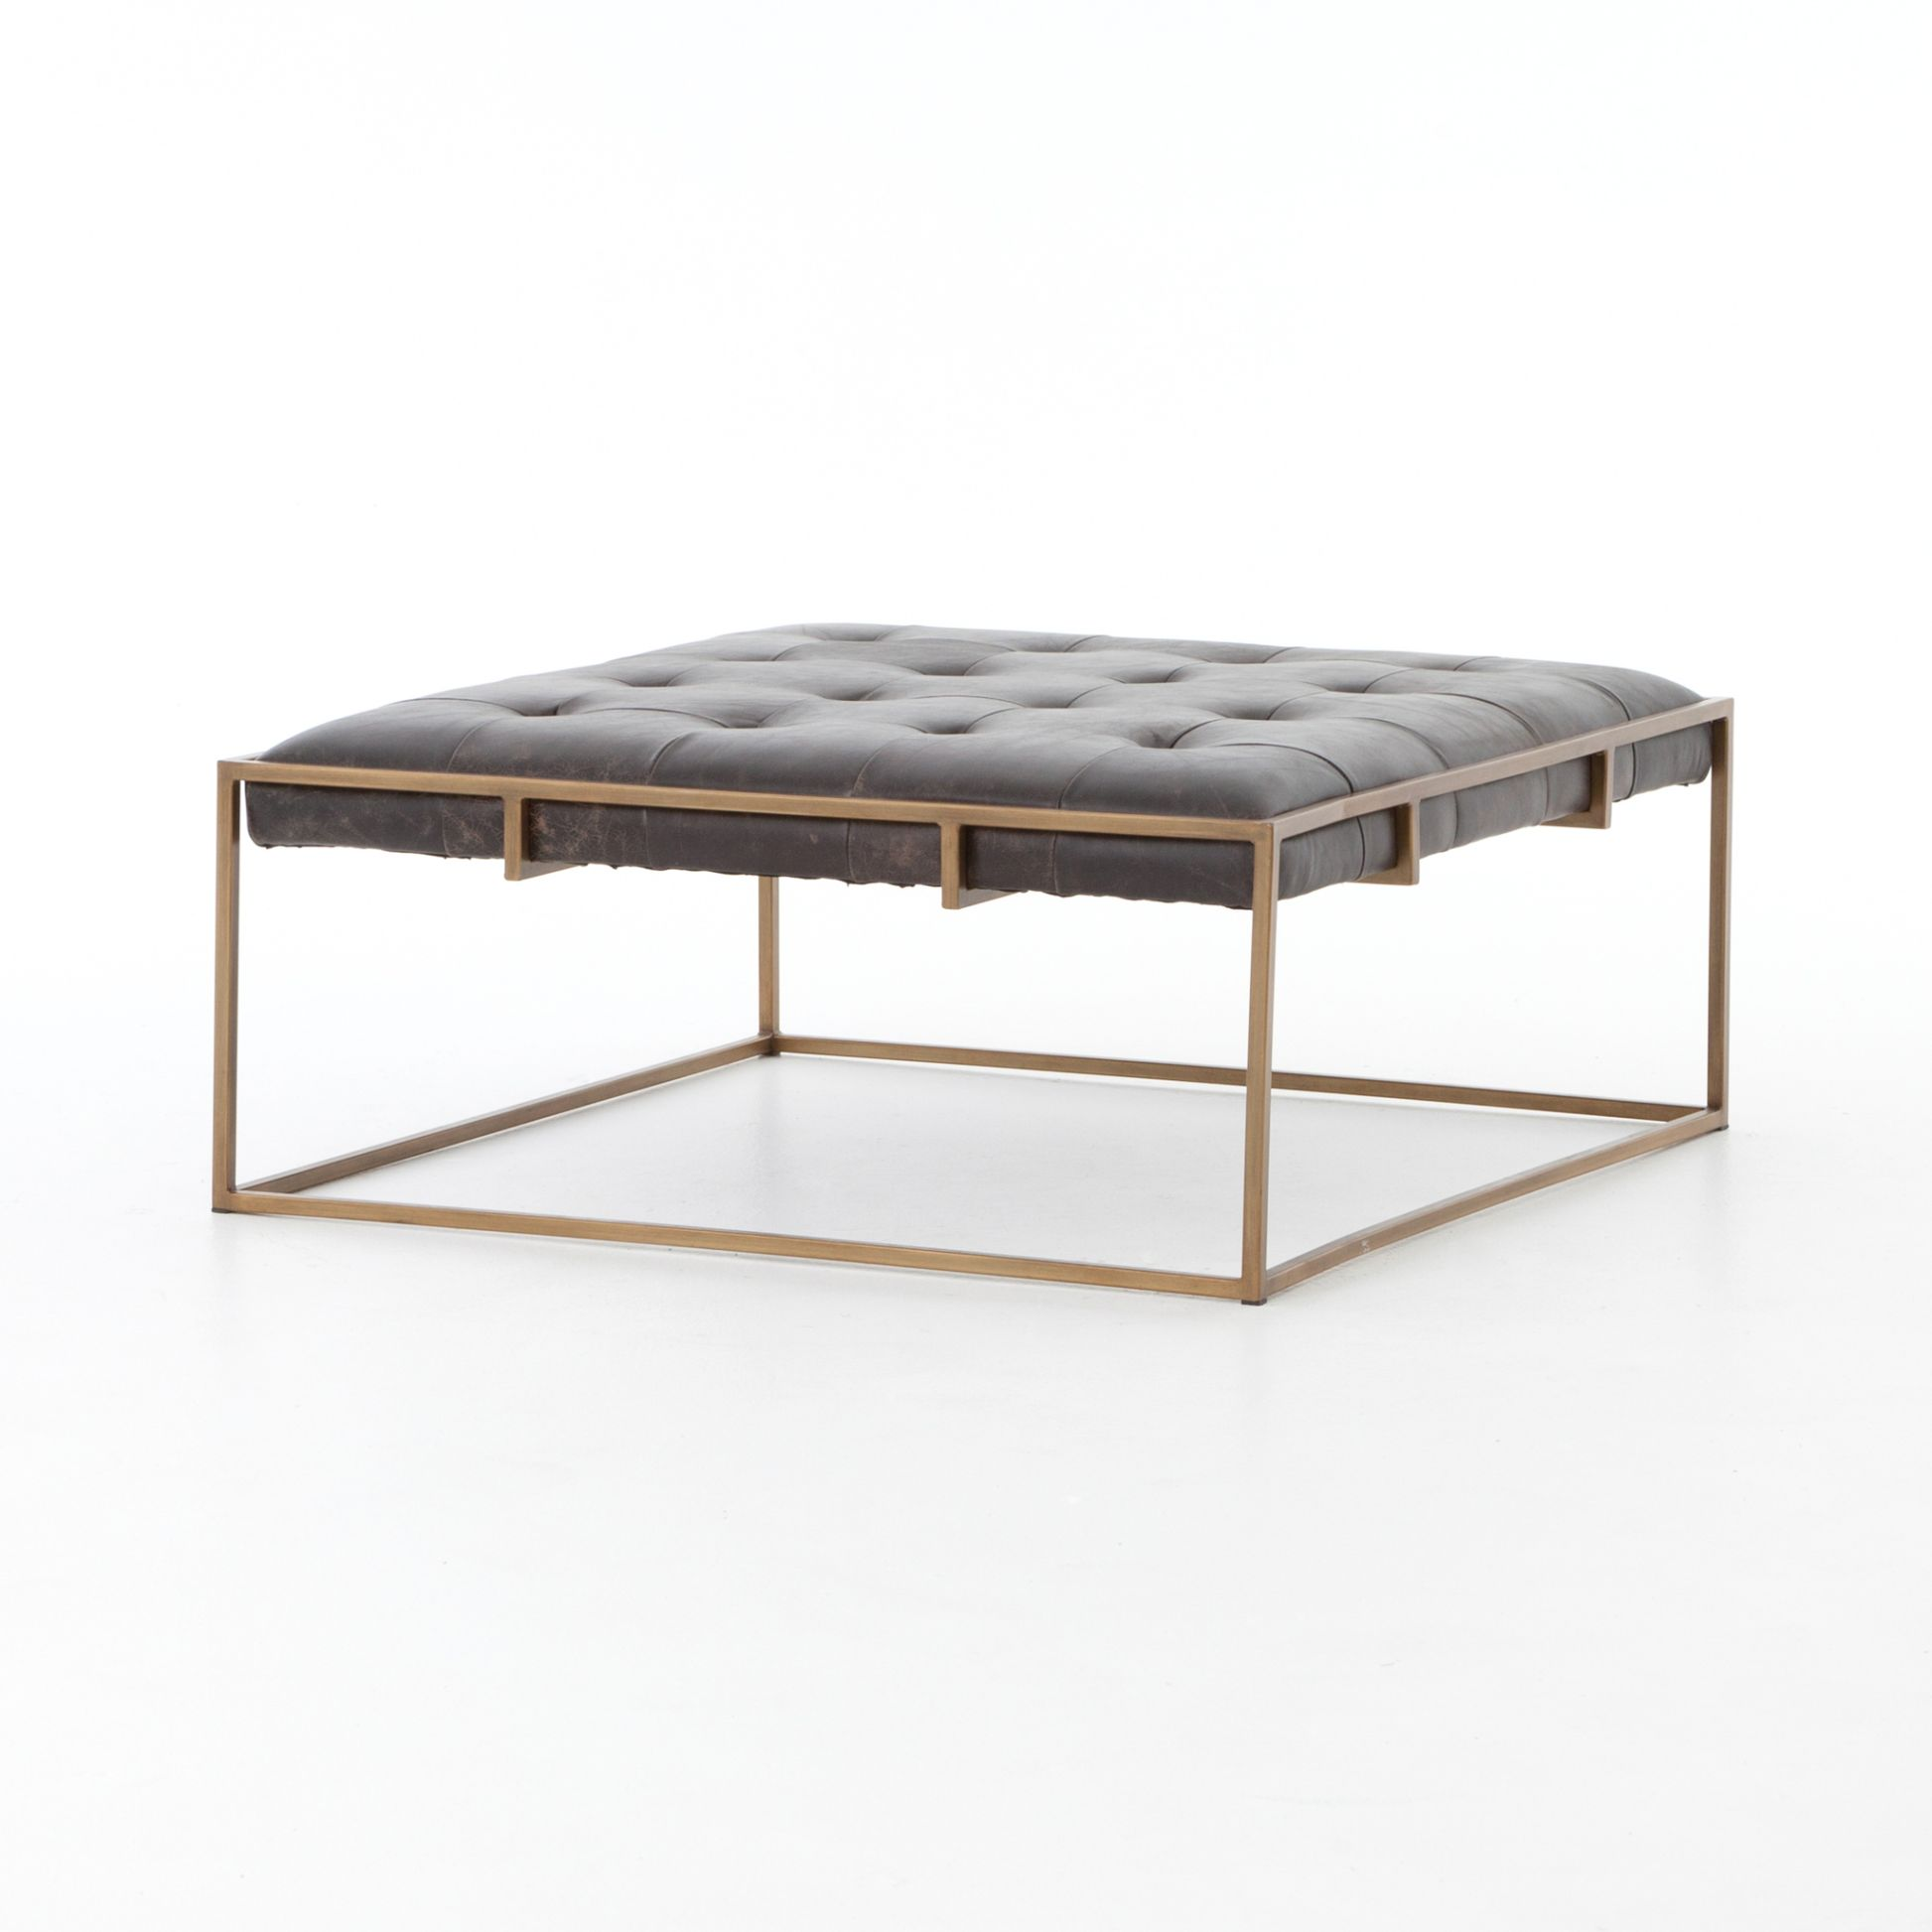 Wonderful Square Tufted Leather Coffee Table Ottoman - Mecox Gardens PE41